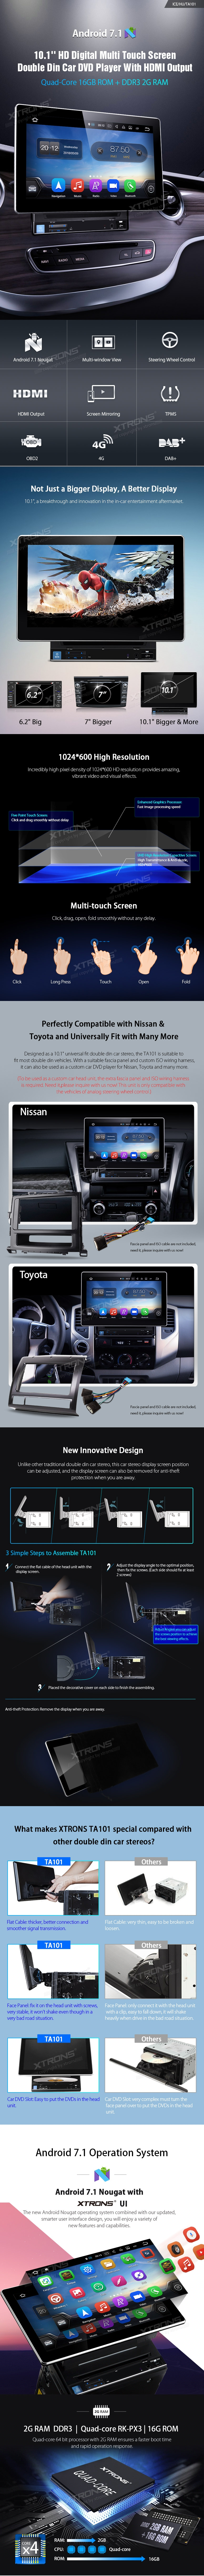 101 Android 71 16gb Rom 2gb Ram Universal Fit Car Stereo Wiring Audio Monitor 2 X Fitting Kit 8 Screw 4 1 User Manual